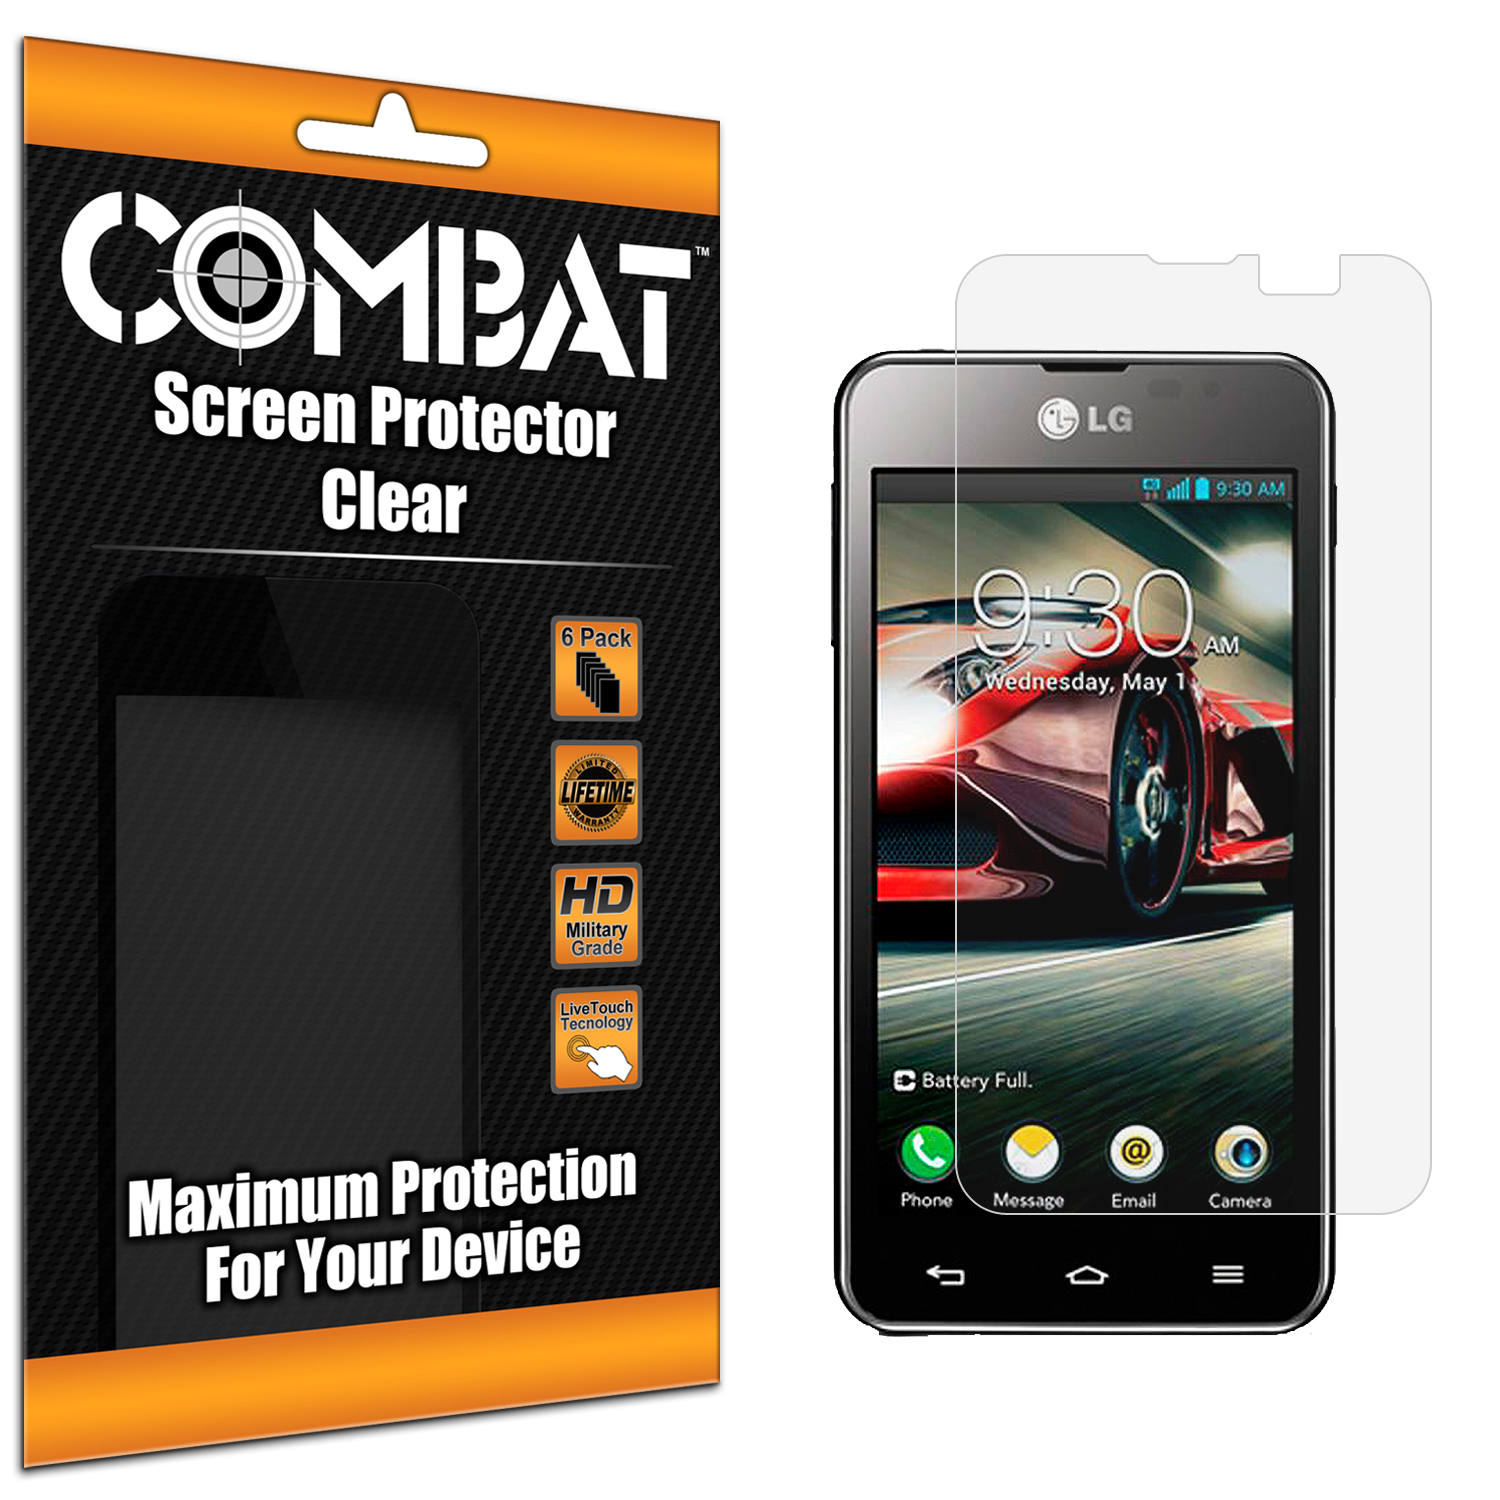 LG Optimus F5 Combat 6 Pack HD Clear Screen Protector